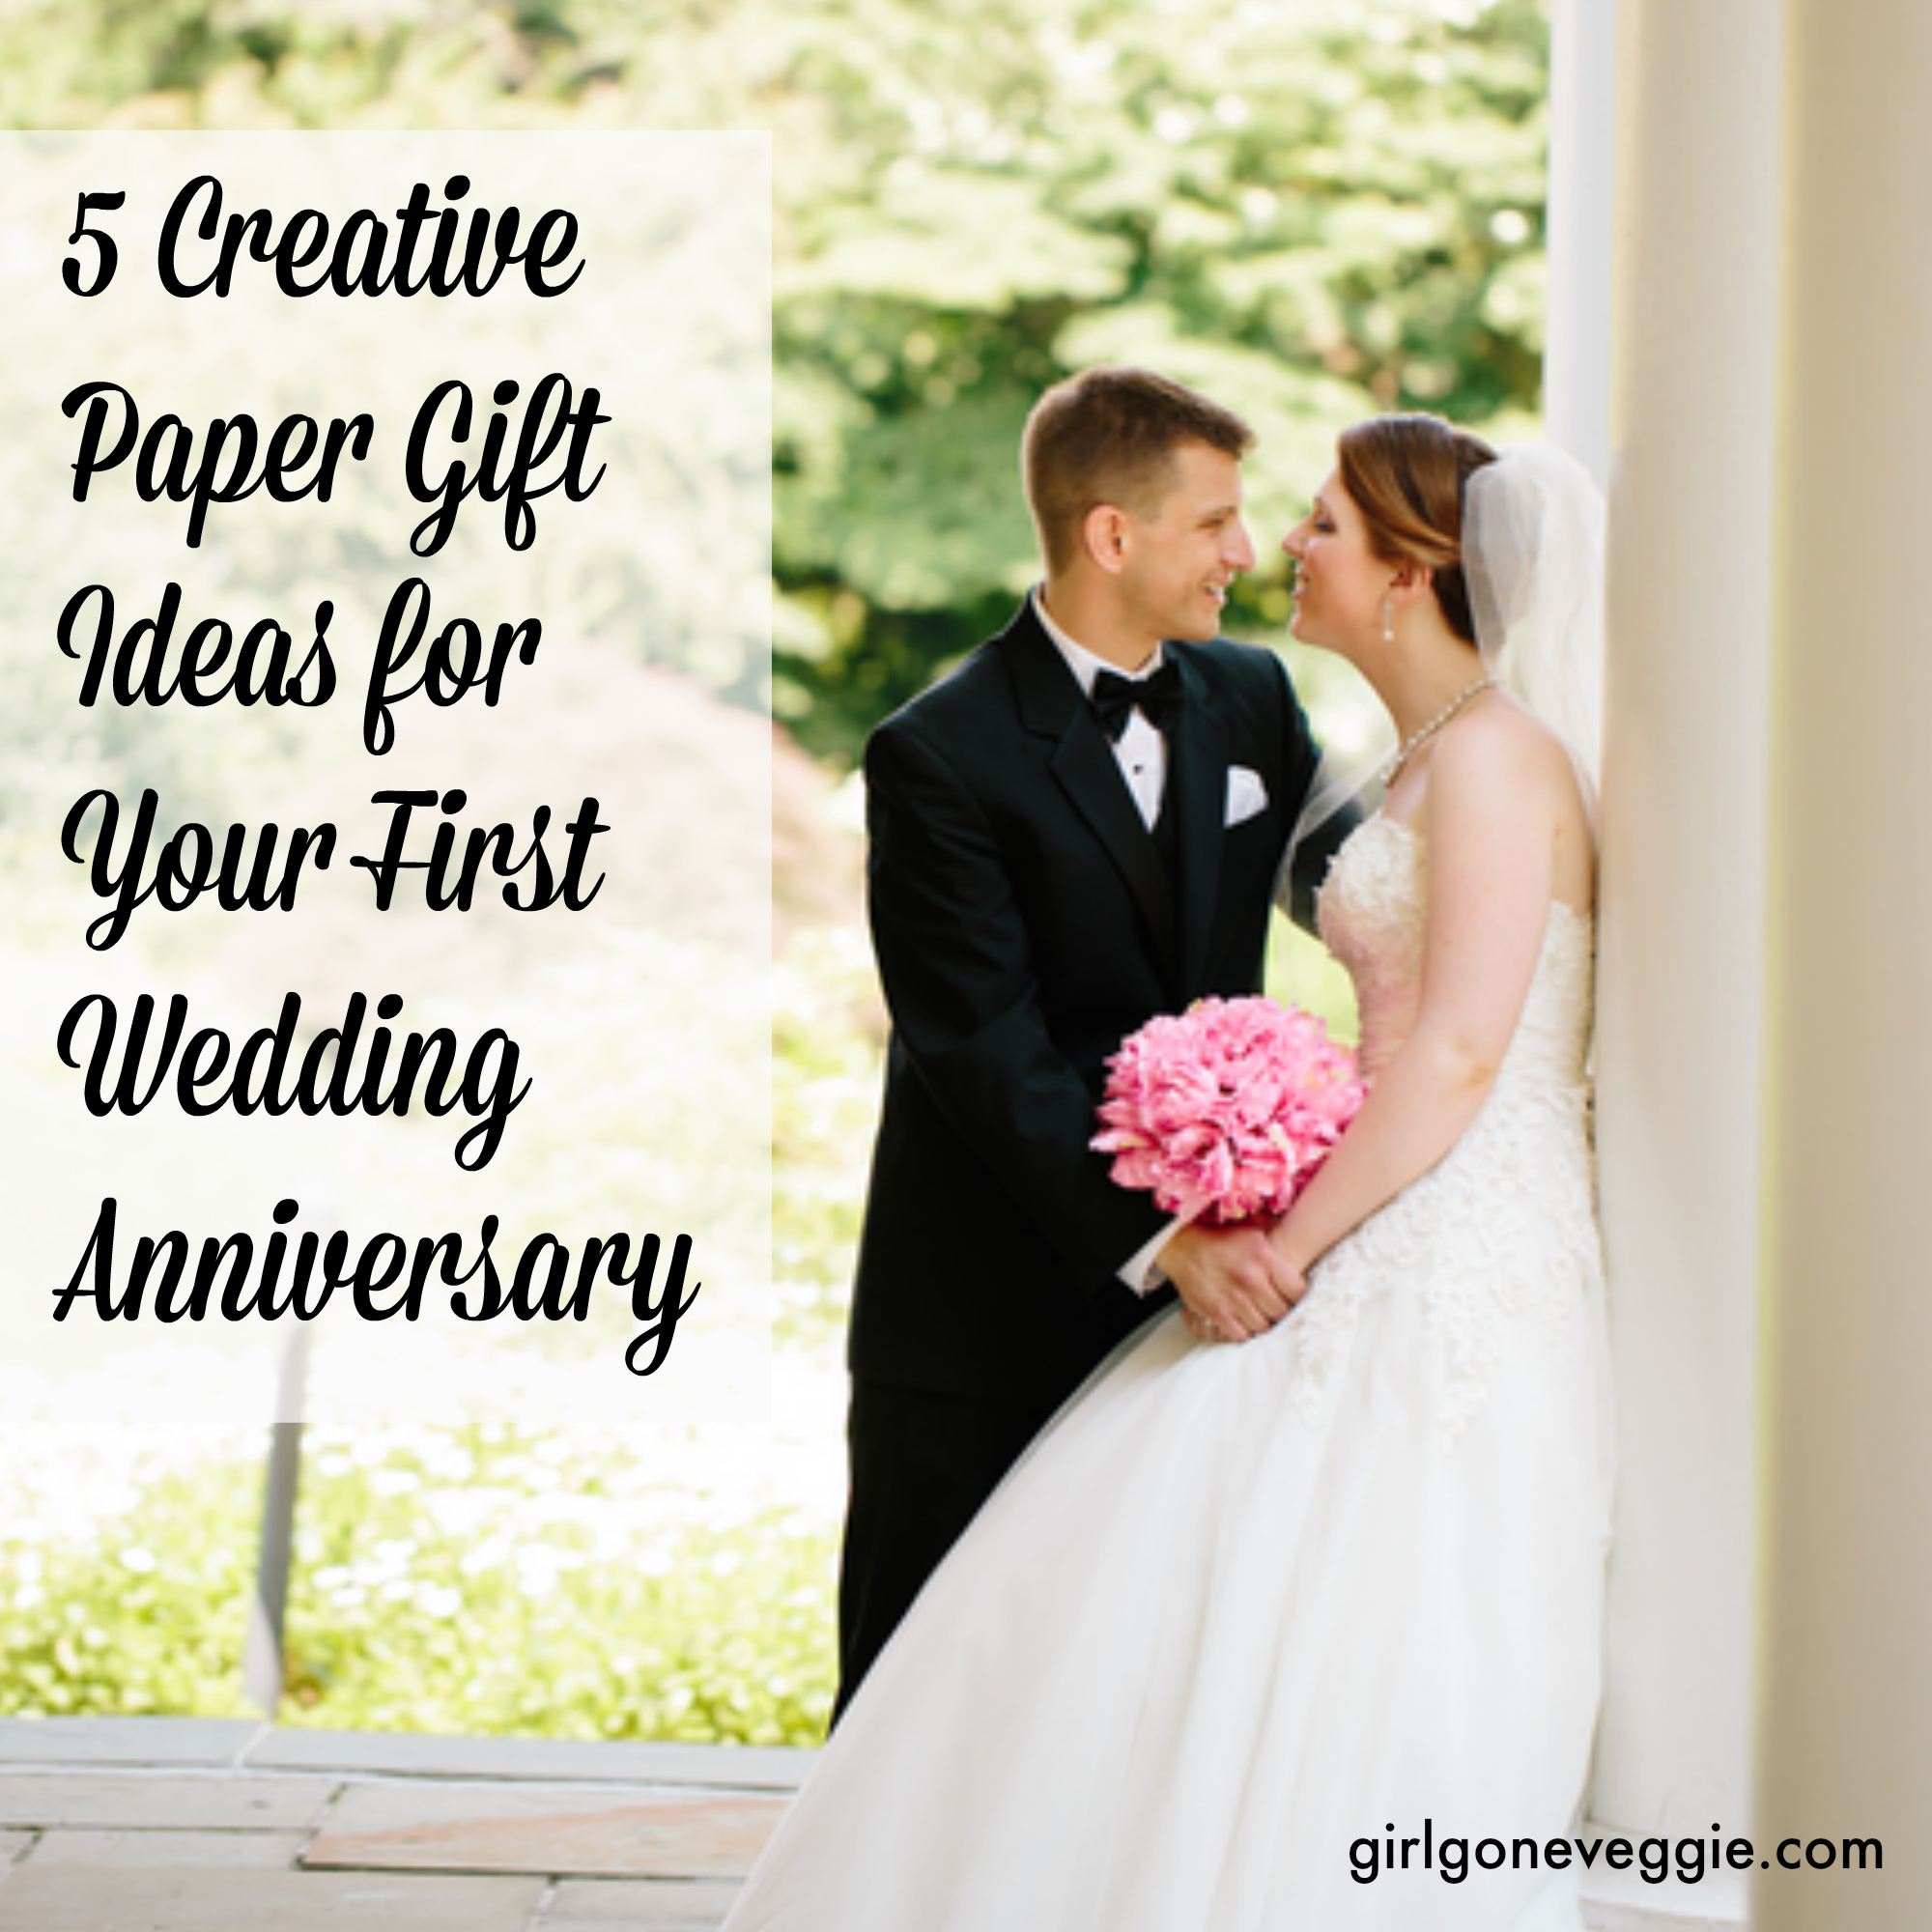 1 Year Wedding Anniversary Gift Ideas Paper : Creative Paper Gift Ideas for Your 1st Wedding Anniversary